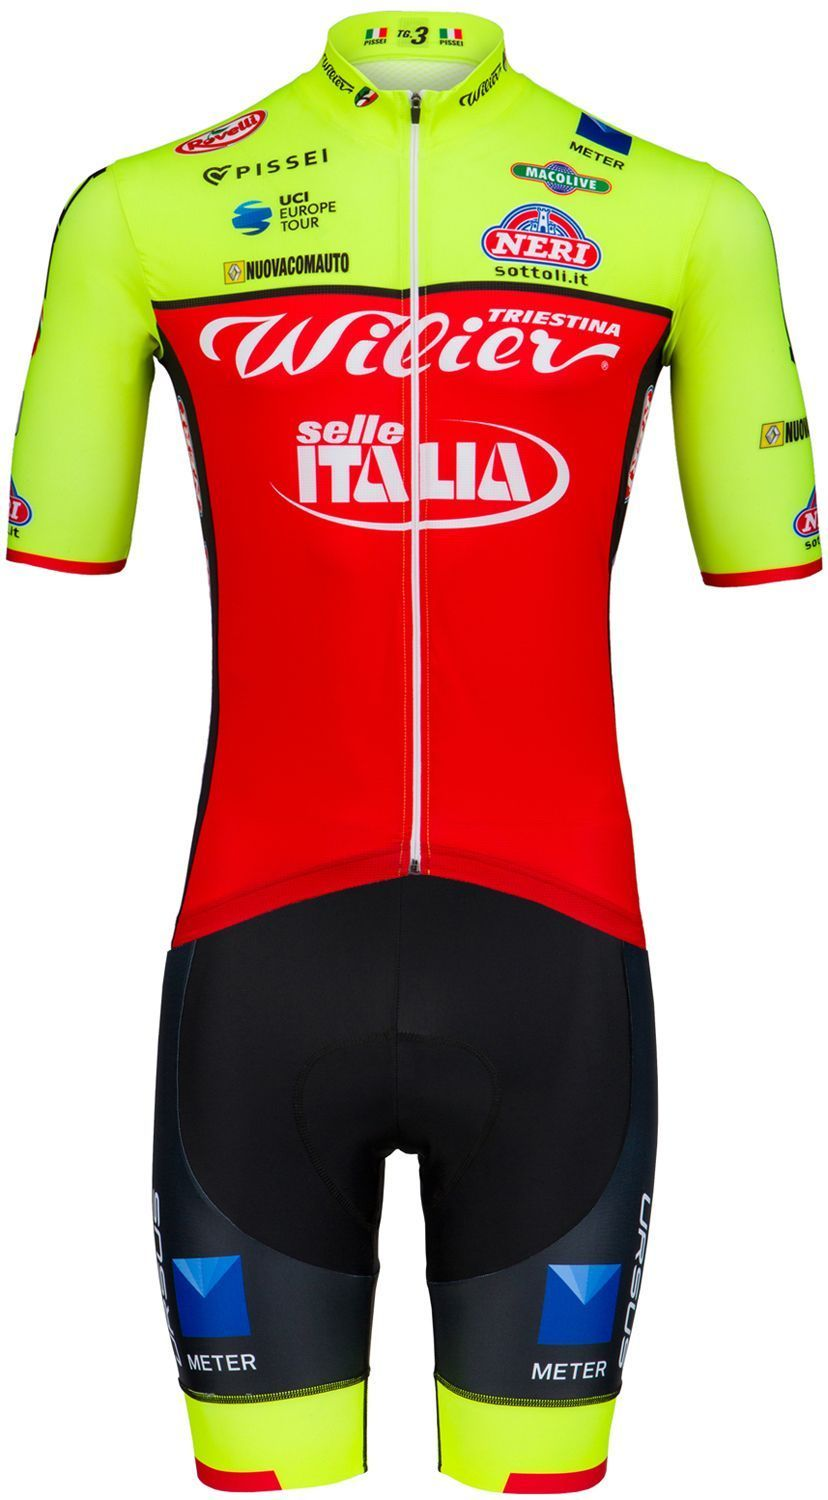 PISSEI Wilier Triestina - Selle Italia 2018 set (jersey long zip + strap  trousers) - professional cycling team 714ee723c